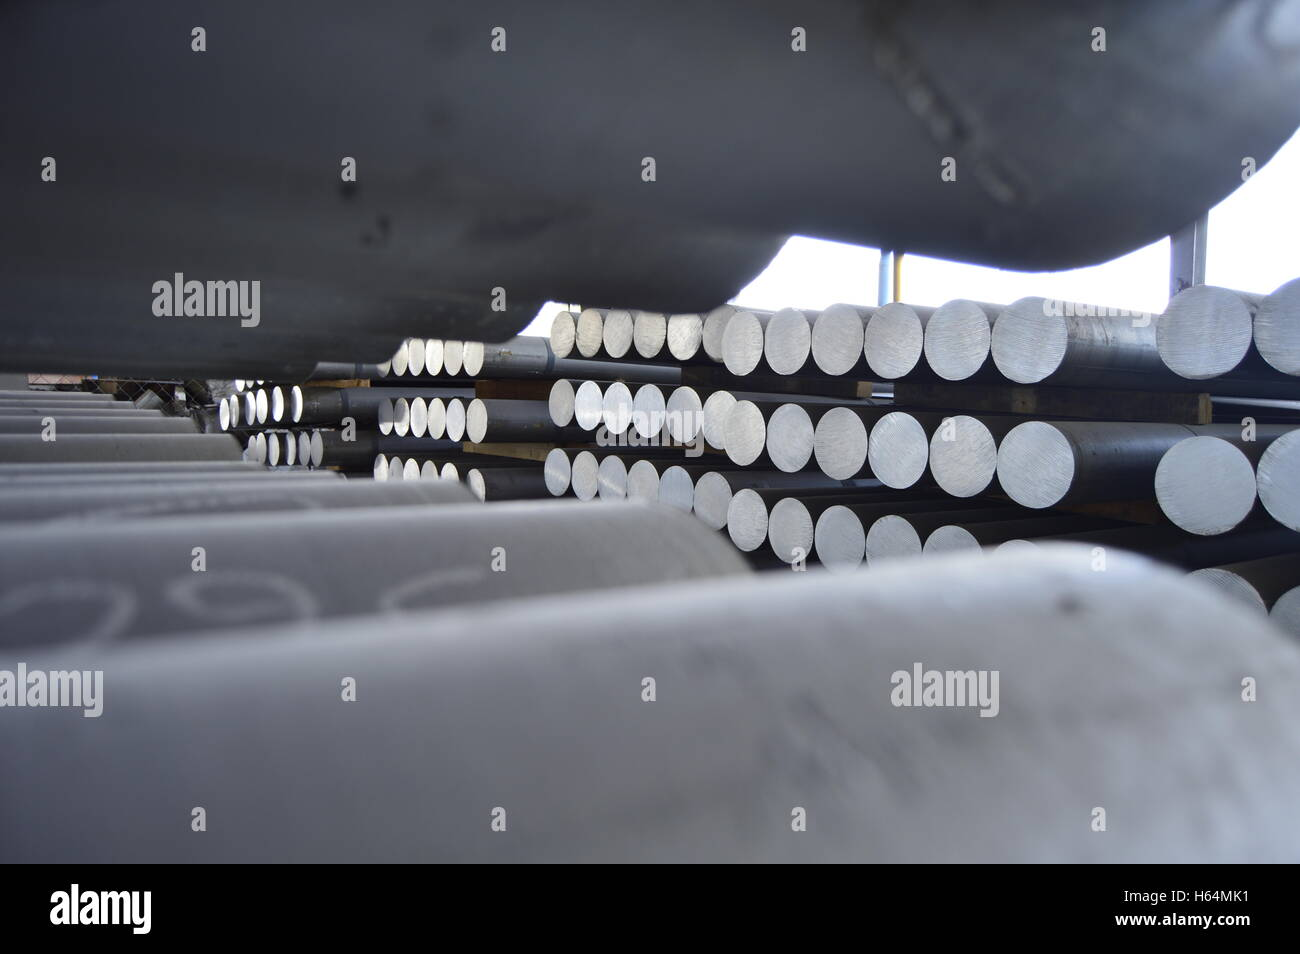 Extrusion Process Stock Photos & Extrusion Process Stock